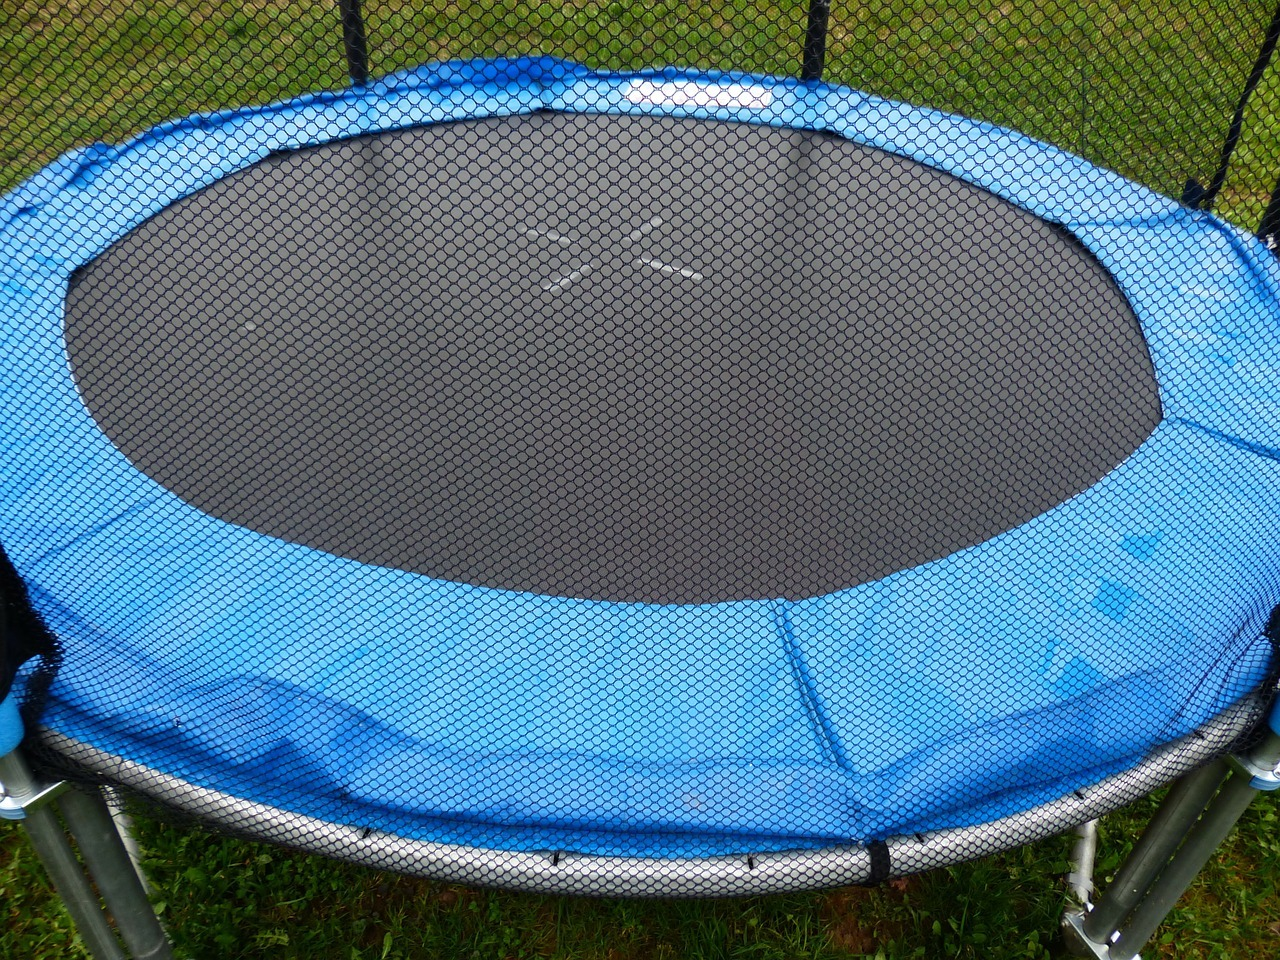 Blue and black trampoline